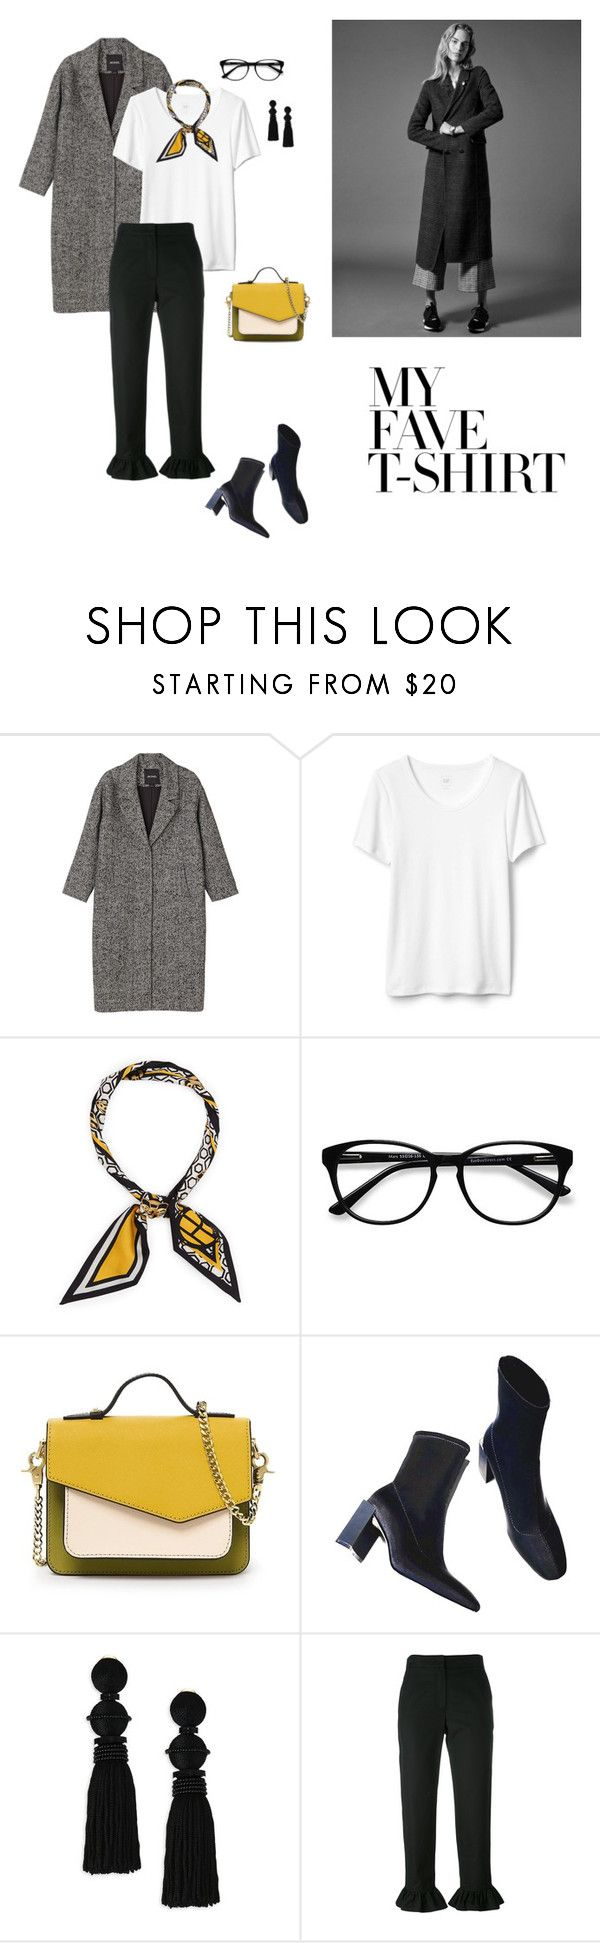 """10/02"" by dorey on Polyvore featuring Monki, Henri Bendel, EyeBuyDirect.com, NATAF, Oscar de la Renta and MSGM"